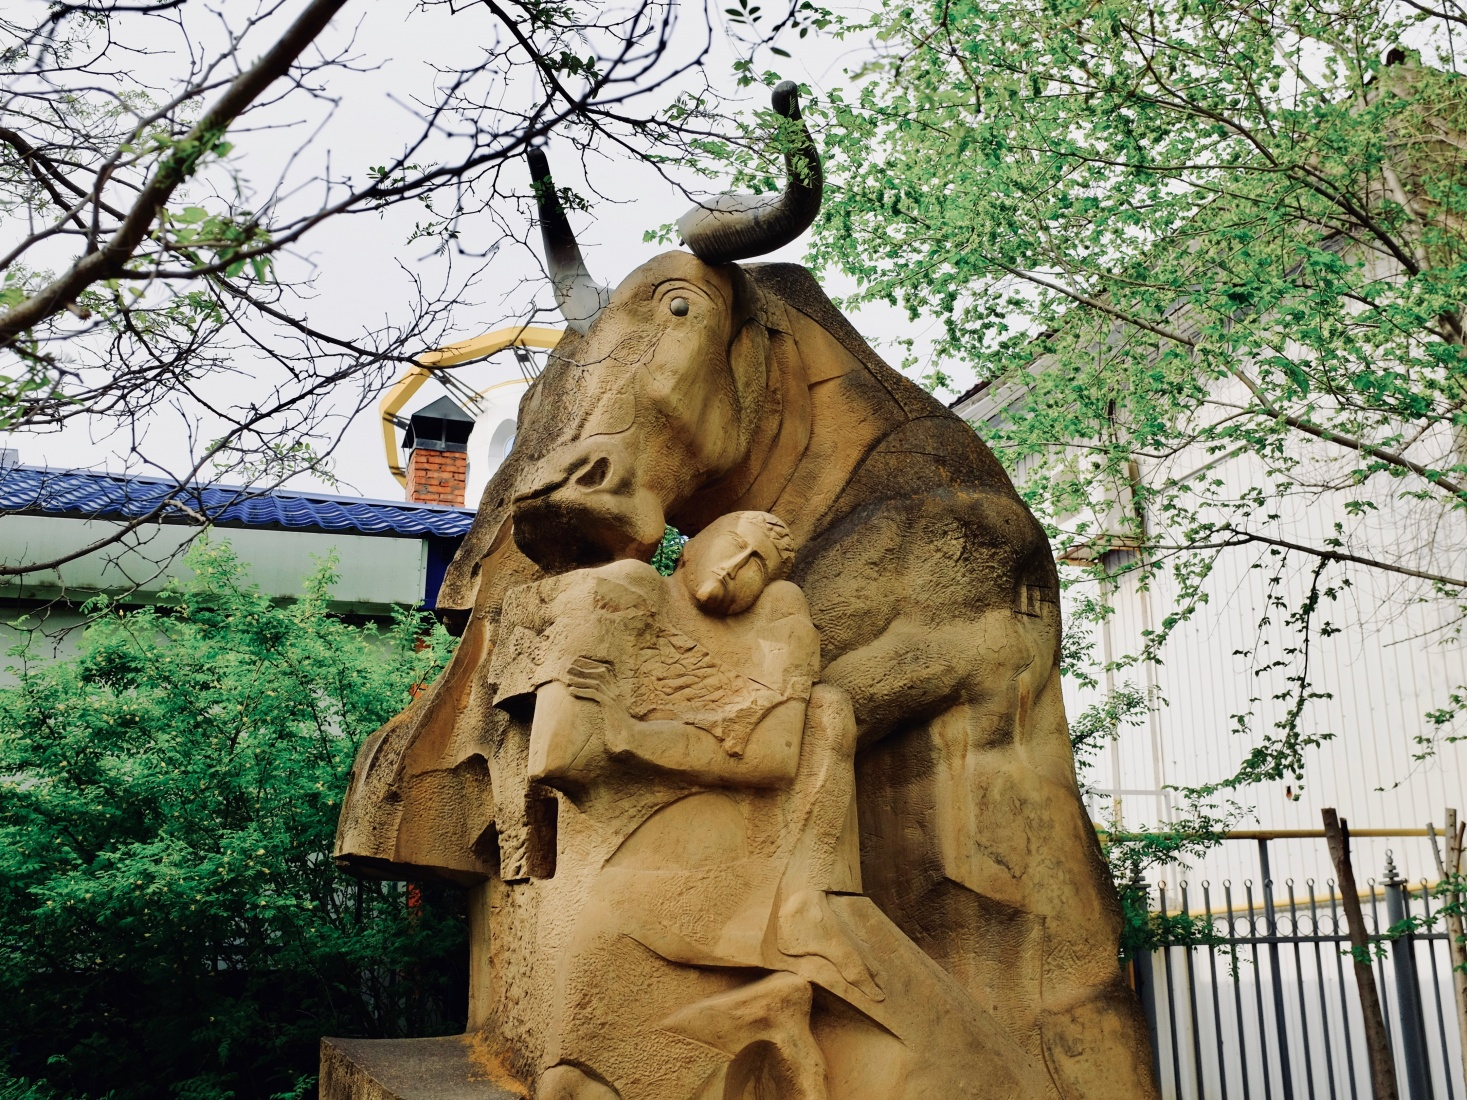 Sculpture on the sidewalk of Elista, Russia, depicting a man and a large horned mammal, possibly a Kalmyk cattle.